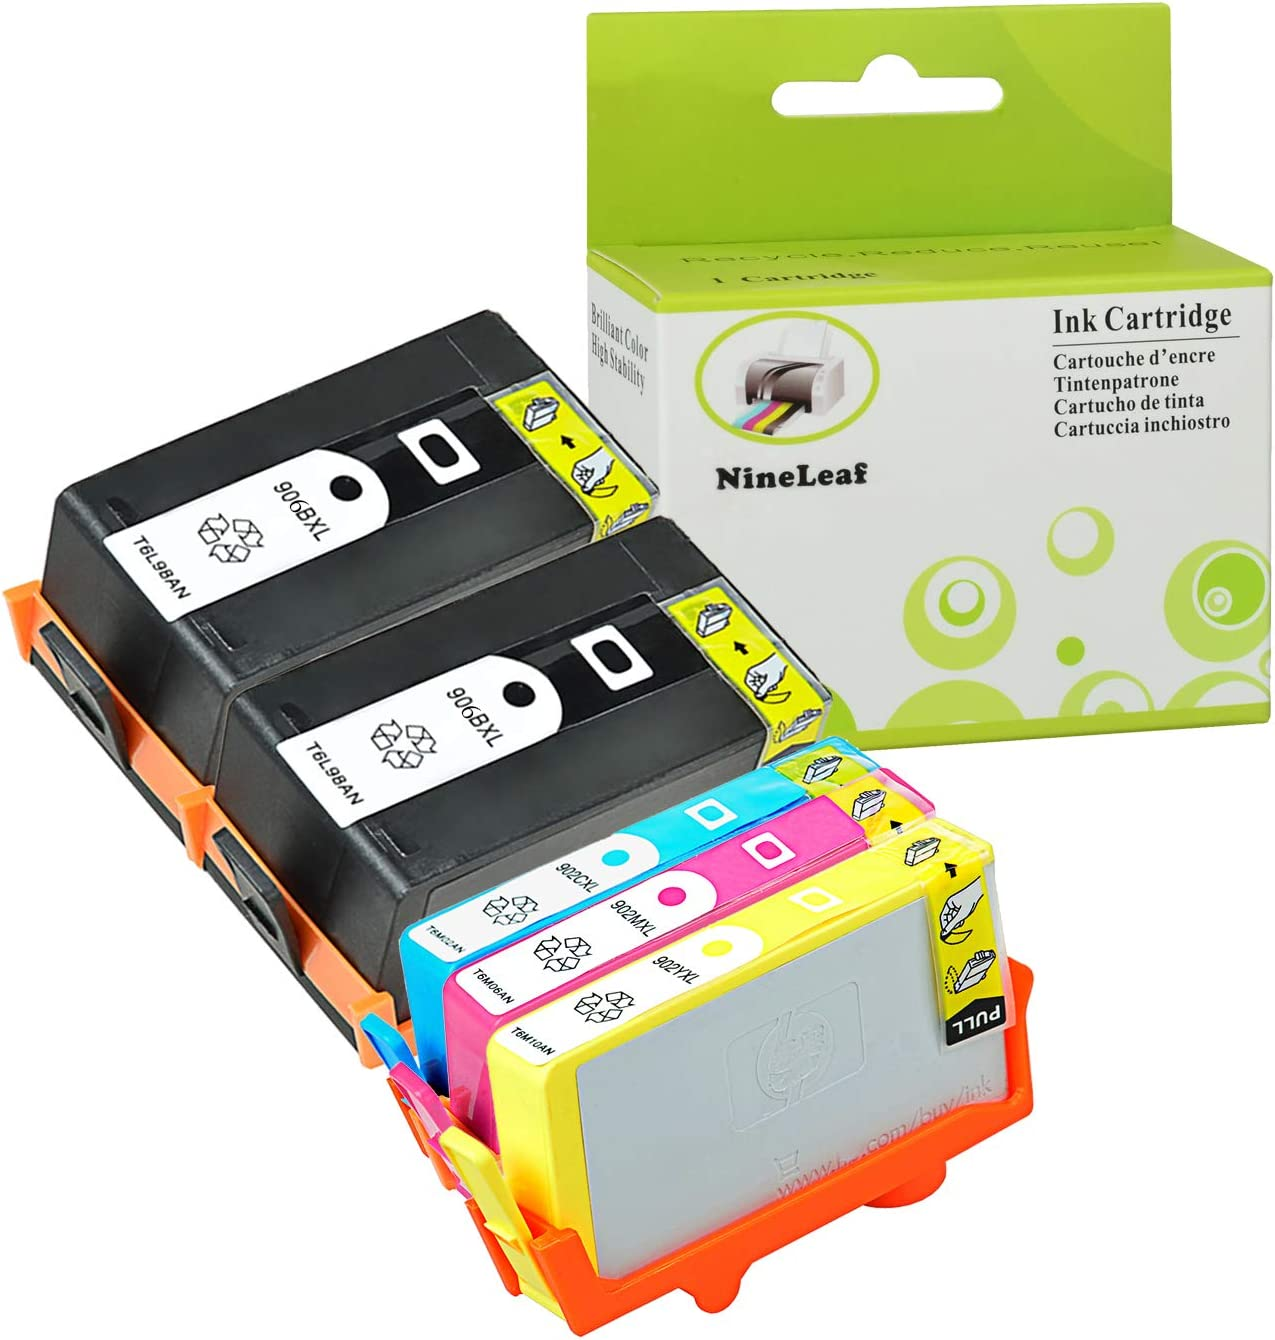 NineLeaf Remanufactured High Yield Ink Cartridge Compatible for HP 906XL /& 902XL 902 XL OfficeJet Pro 6960 6968 6970 6974 6975 6978 All-in-One Printer 2 Black,1 Cyan,1 Magenta,1 Yellow, 5-Pack